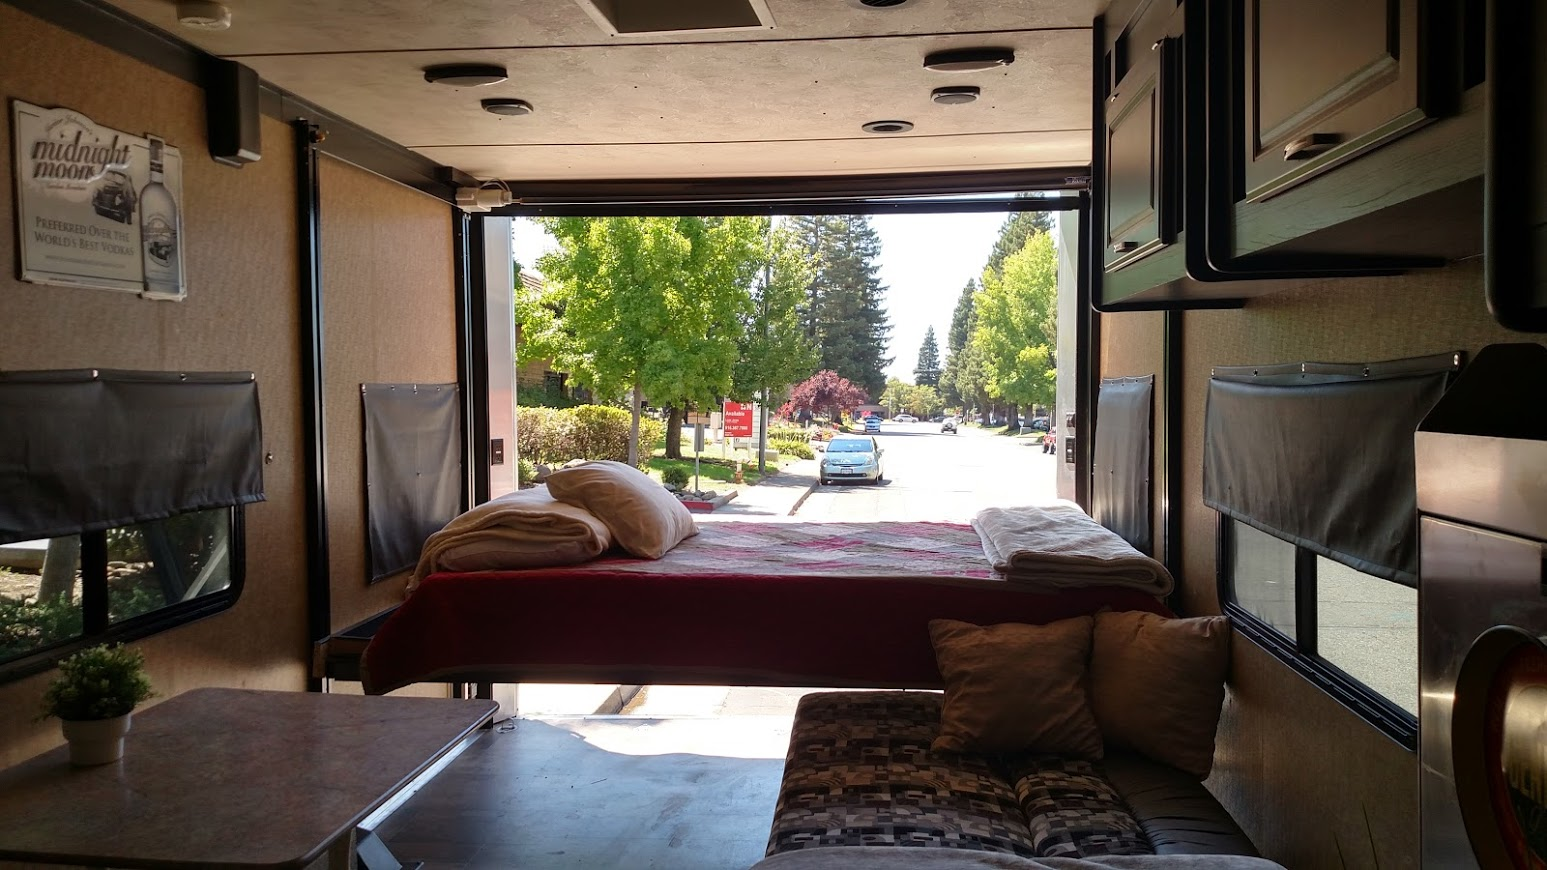 "Rear queen bed raises up to a height of 72"" Rear screen door (not shown) Sleeps 4-6 comfortably. Forest River Work And Play 2014"